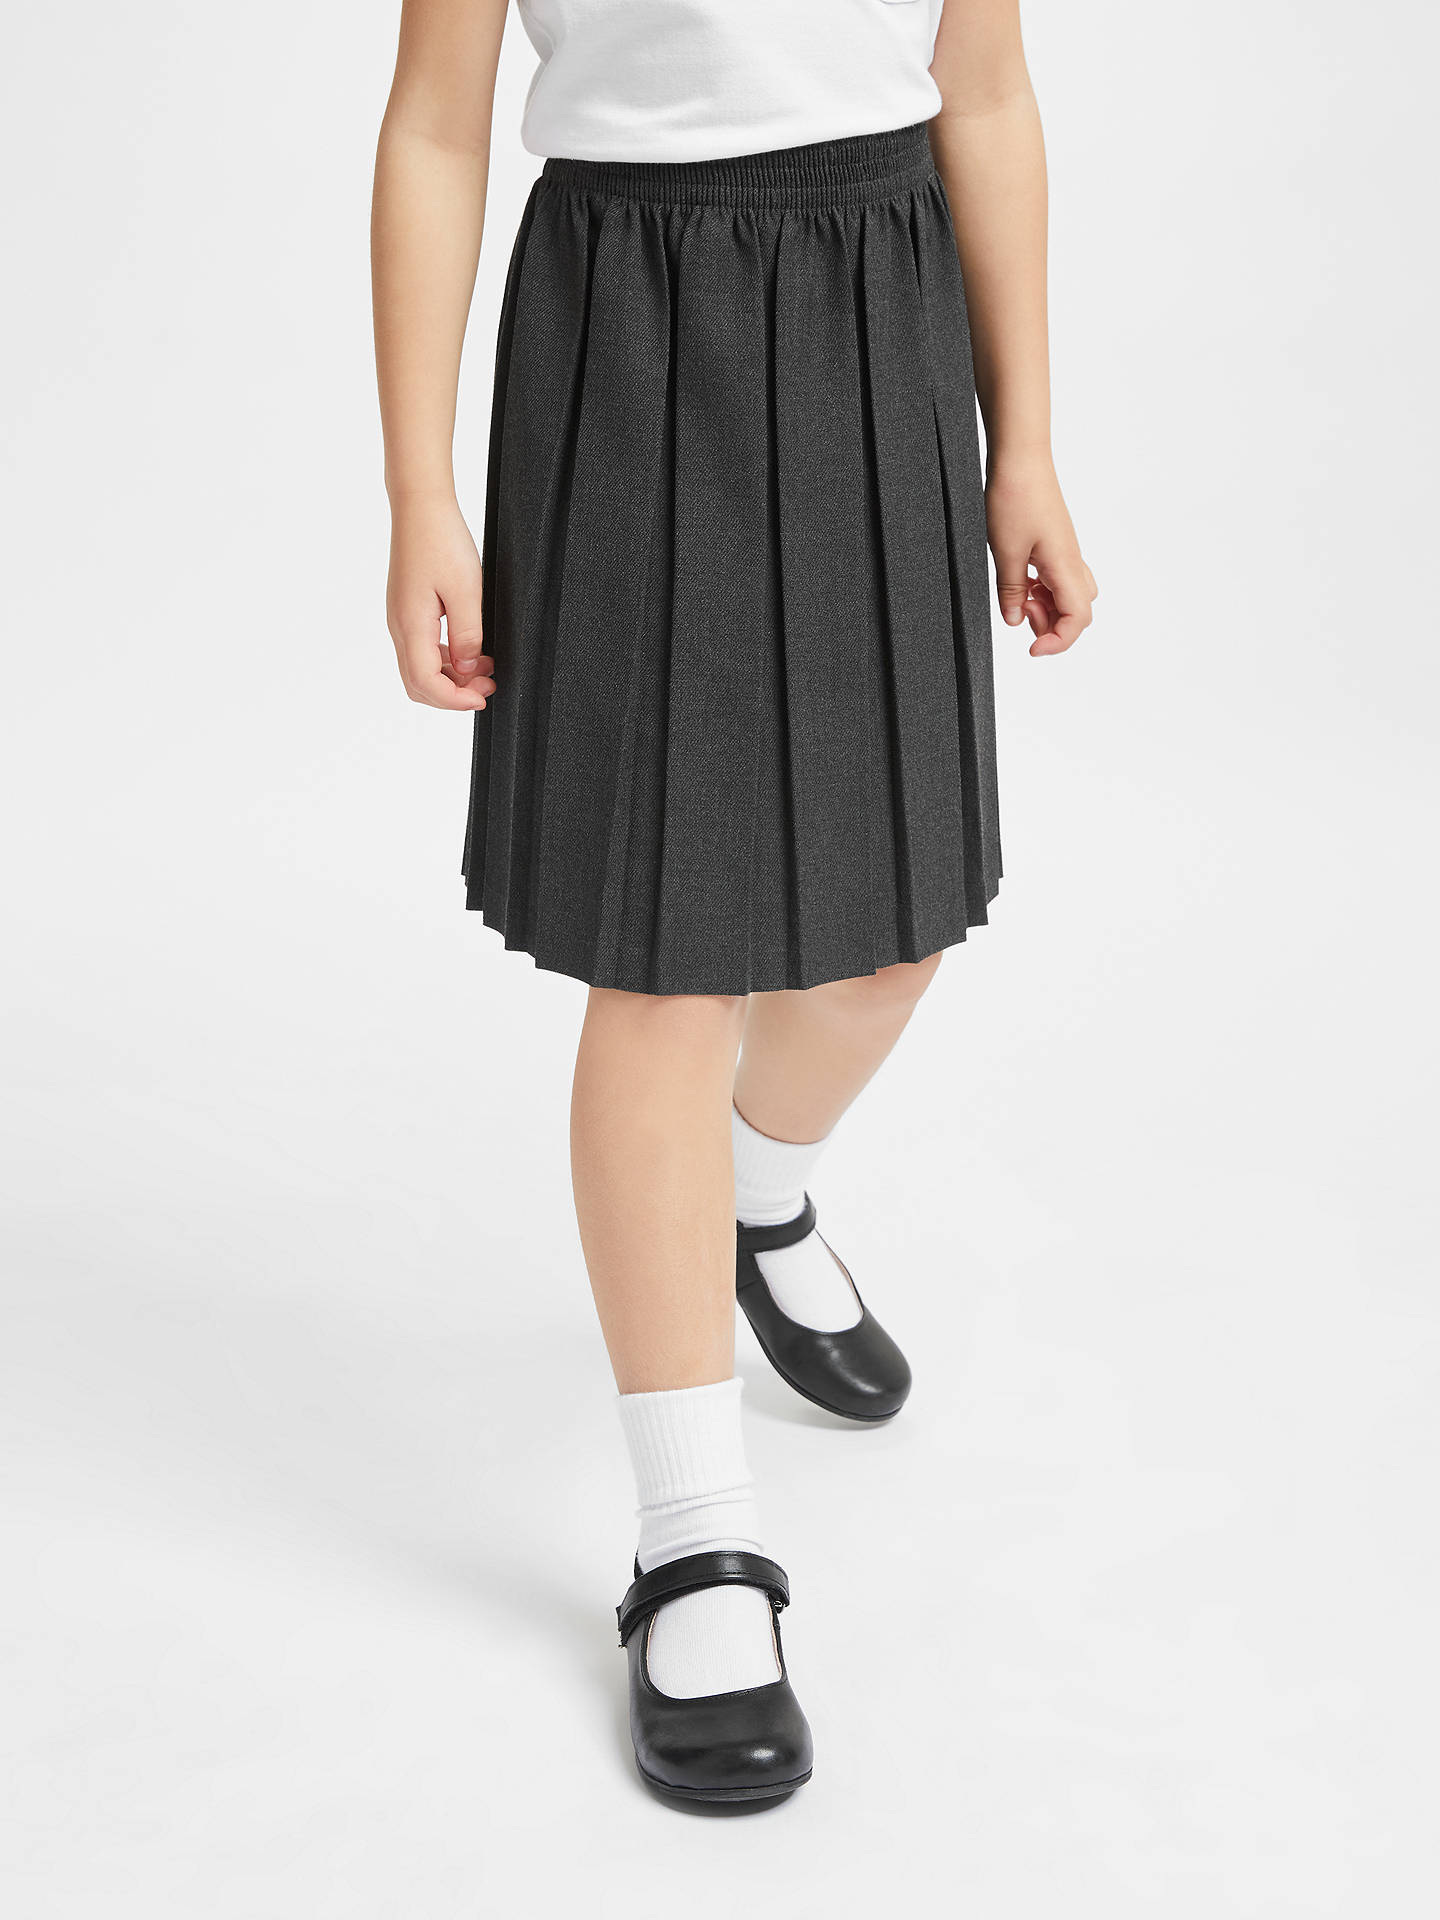 Sizes 7-20 Cookie/'s Brand Big Girls/' Long Pleated Skirt